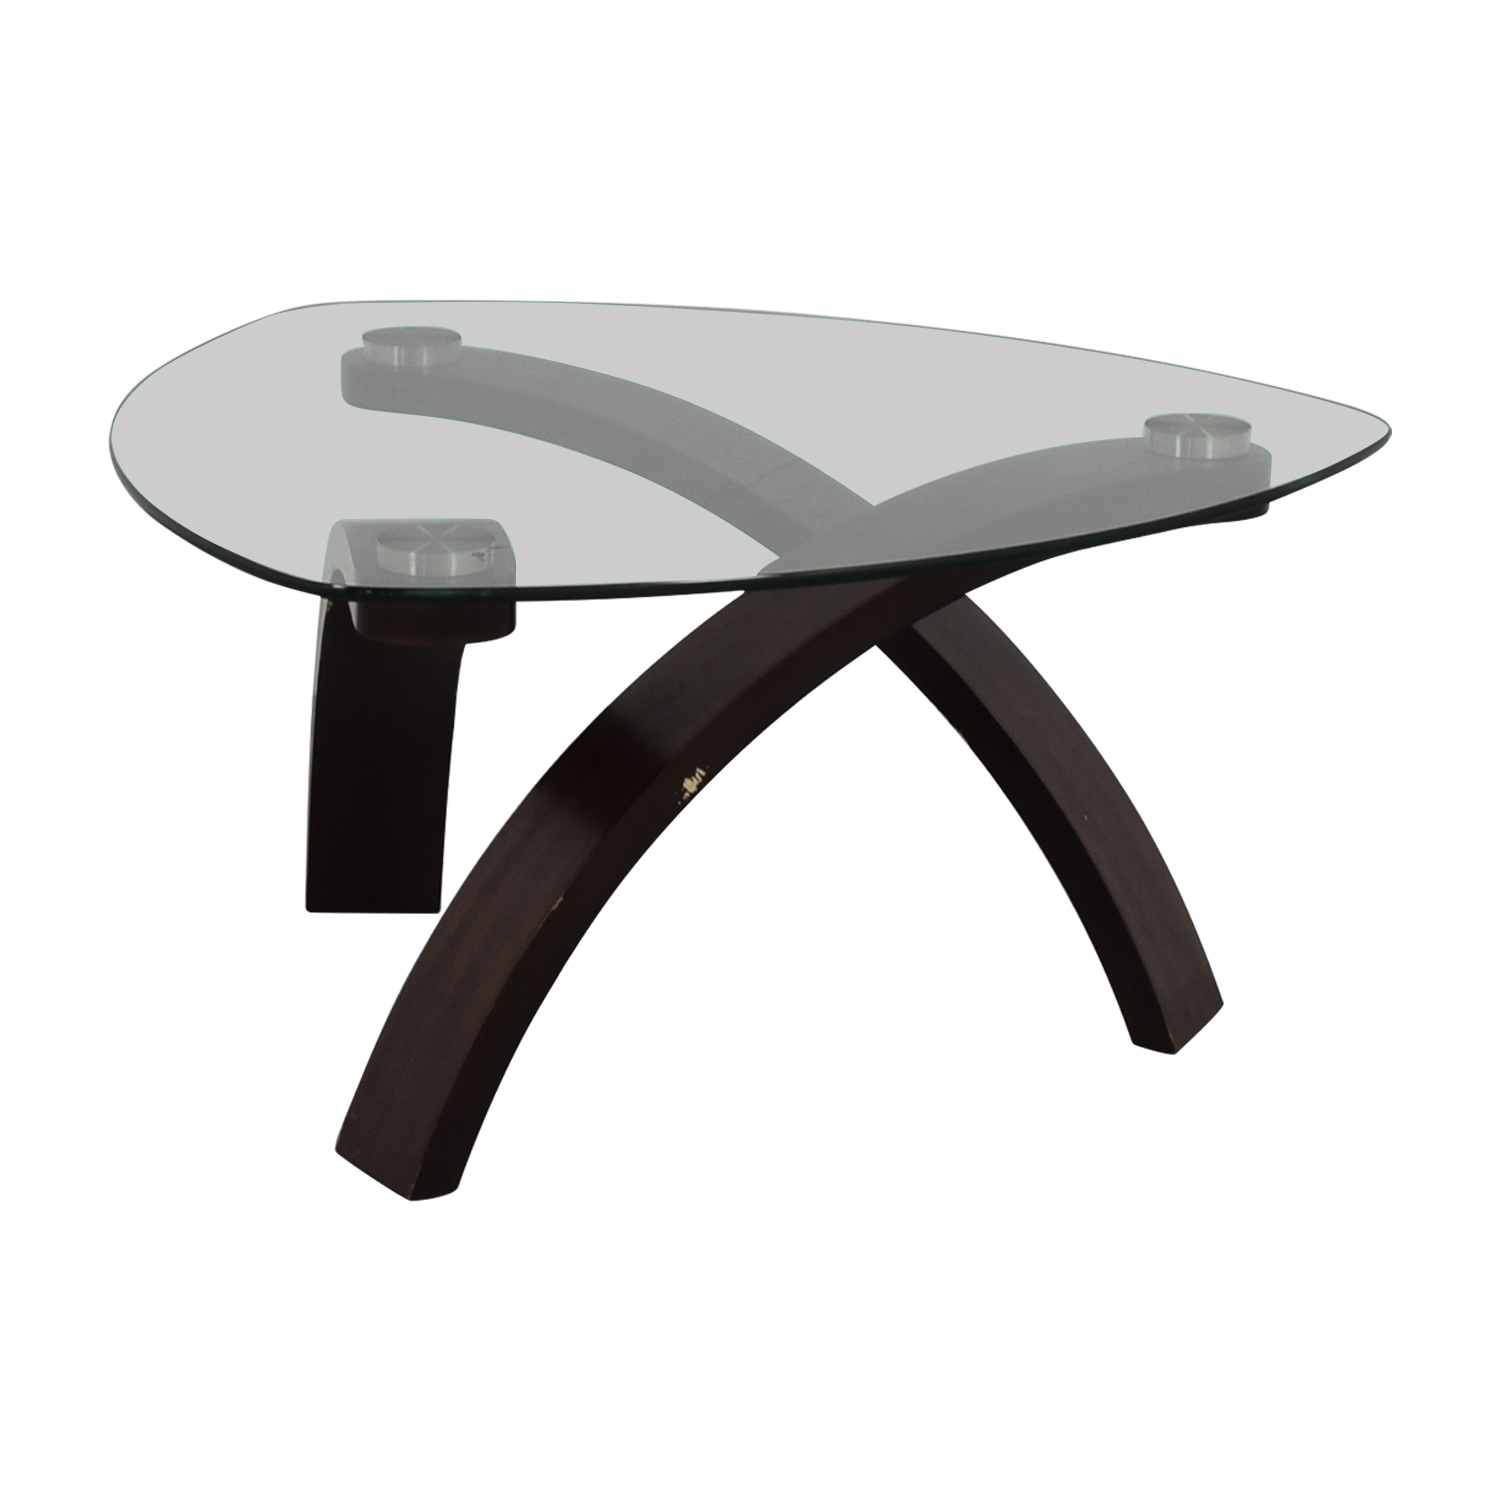 Raymour & Flanigan Raymour & Flanigan Modern Coffee Table dimensions